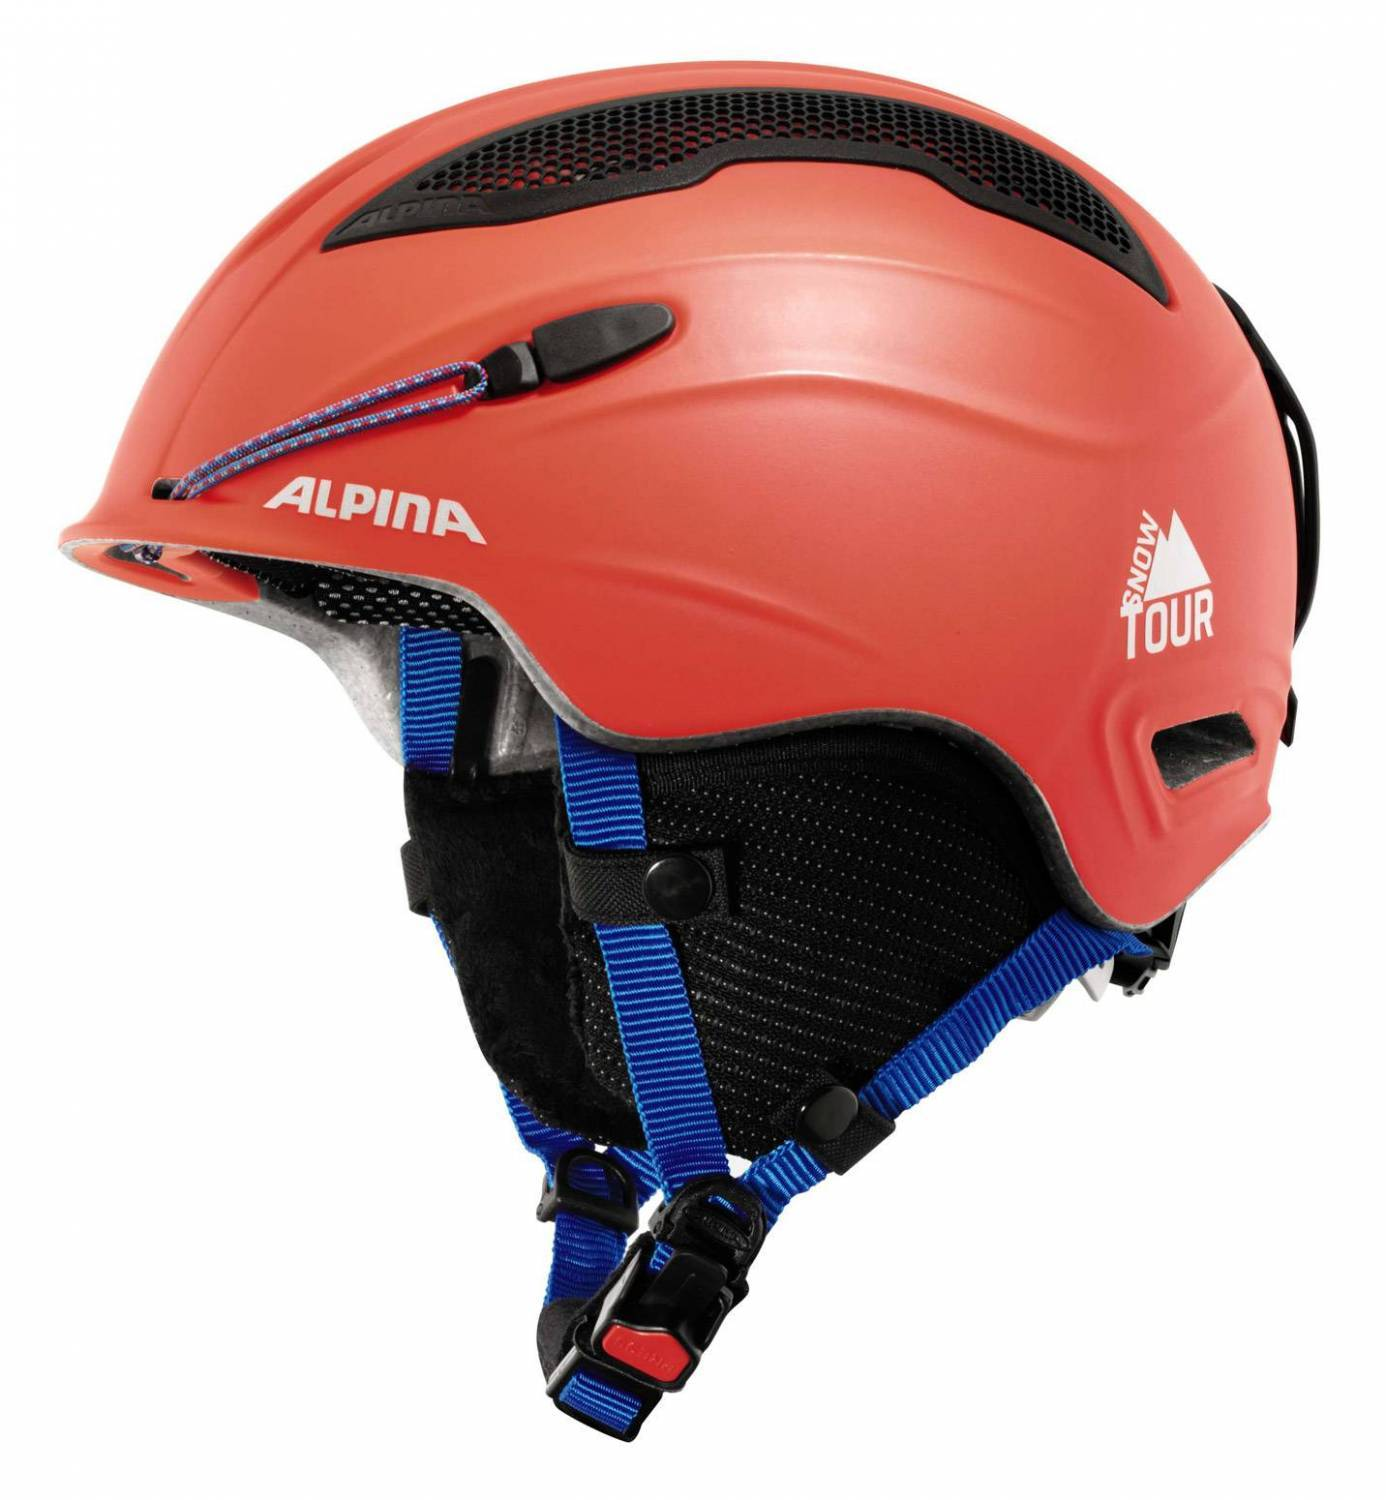 Alpina Snow Tour incl Earpad Ski helmet red black